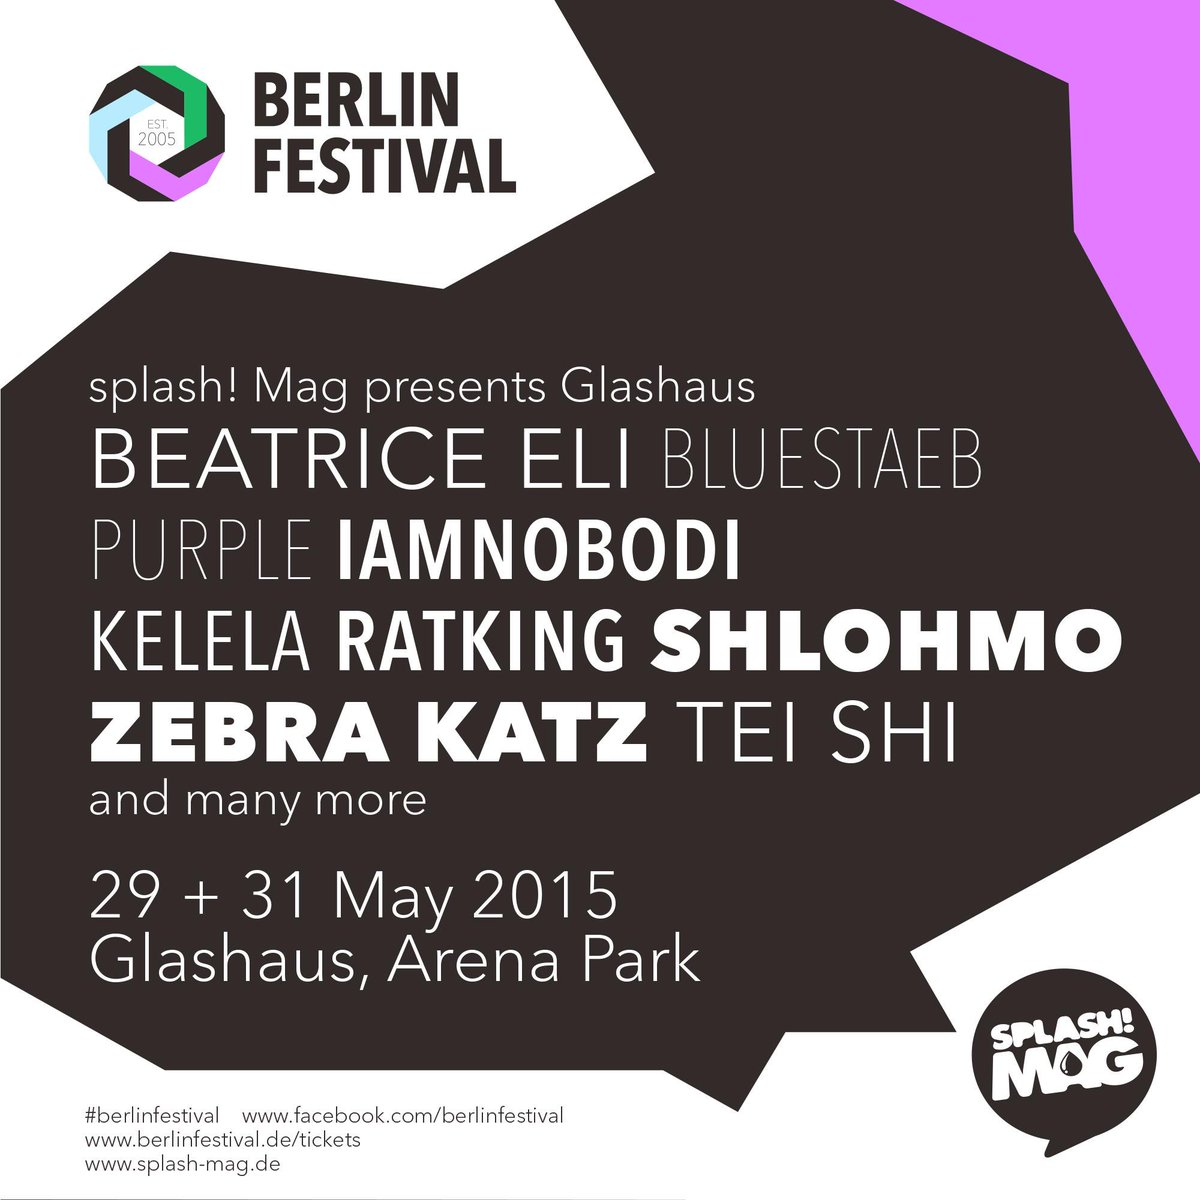 Stoked to have .@Splashmag​ at #berlinfestival again this year w/ @ZebraKatz​, @RatKing​, @BeatriceEli & many more! http://t.co/B2EIkZQFFq